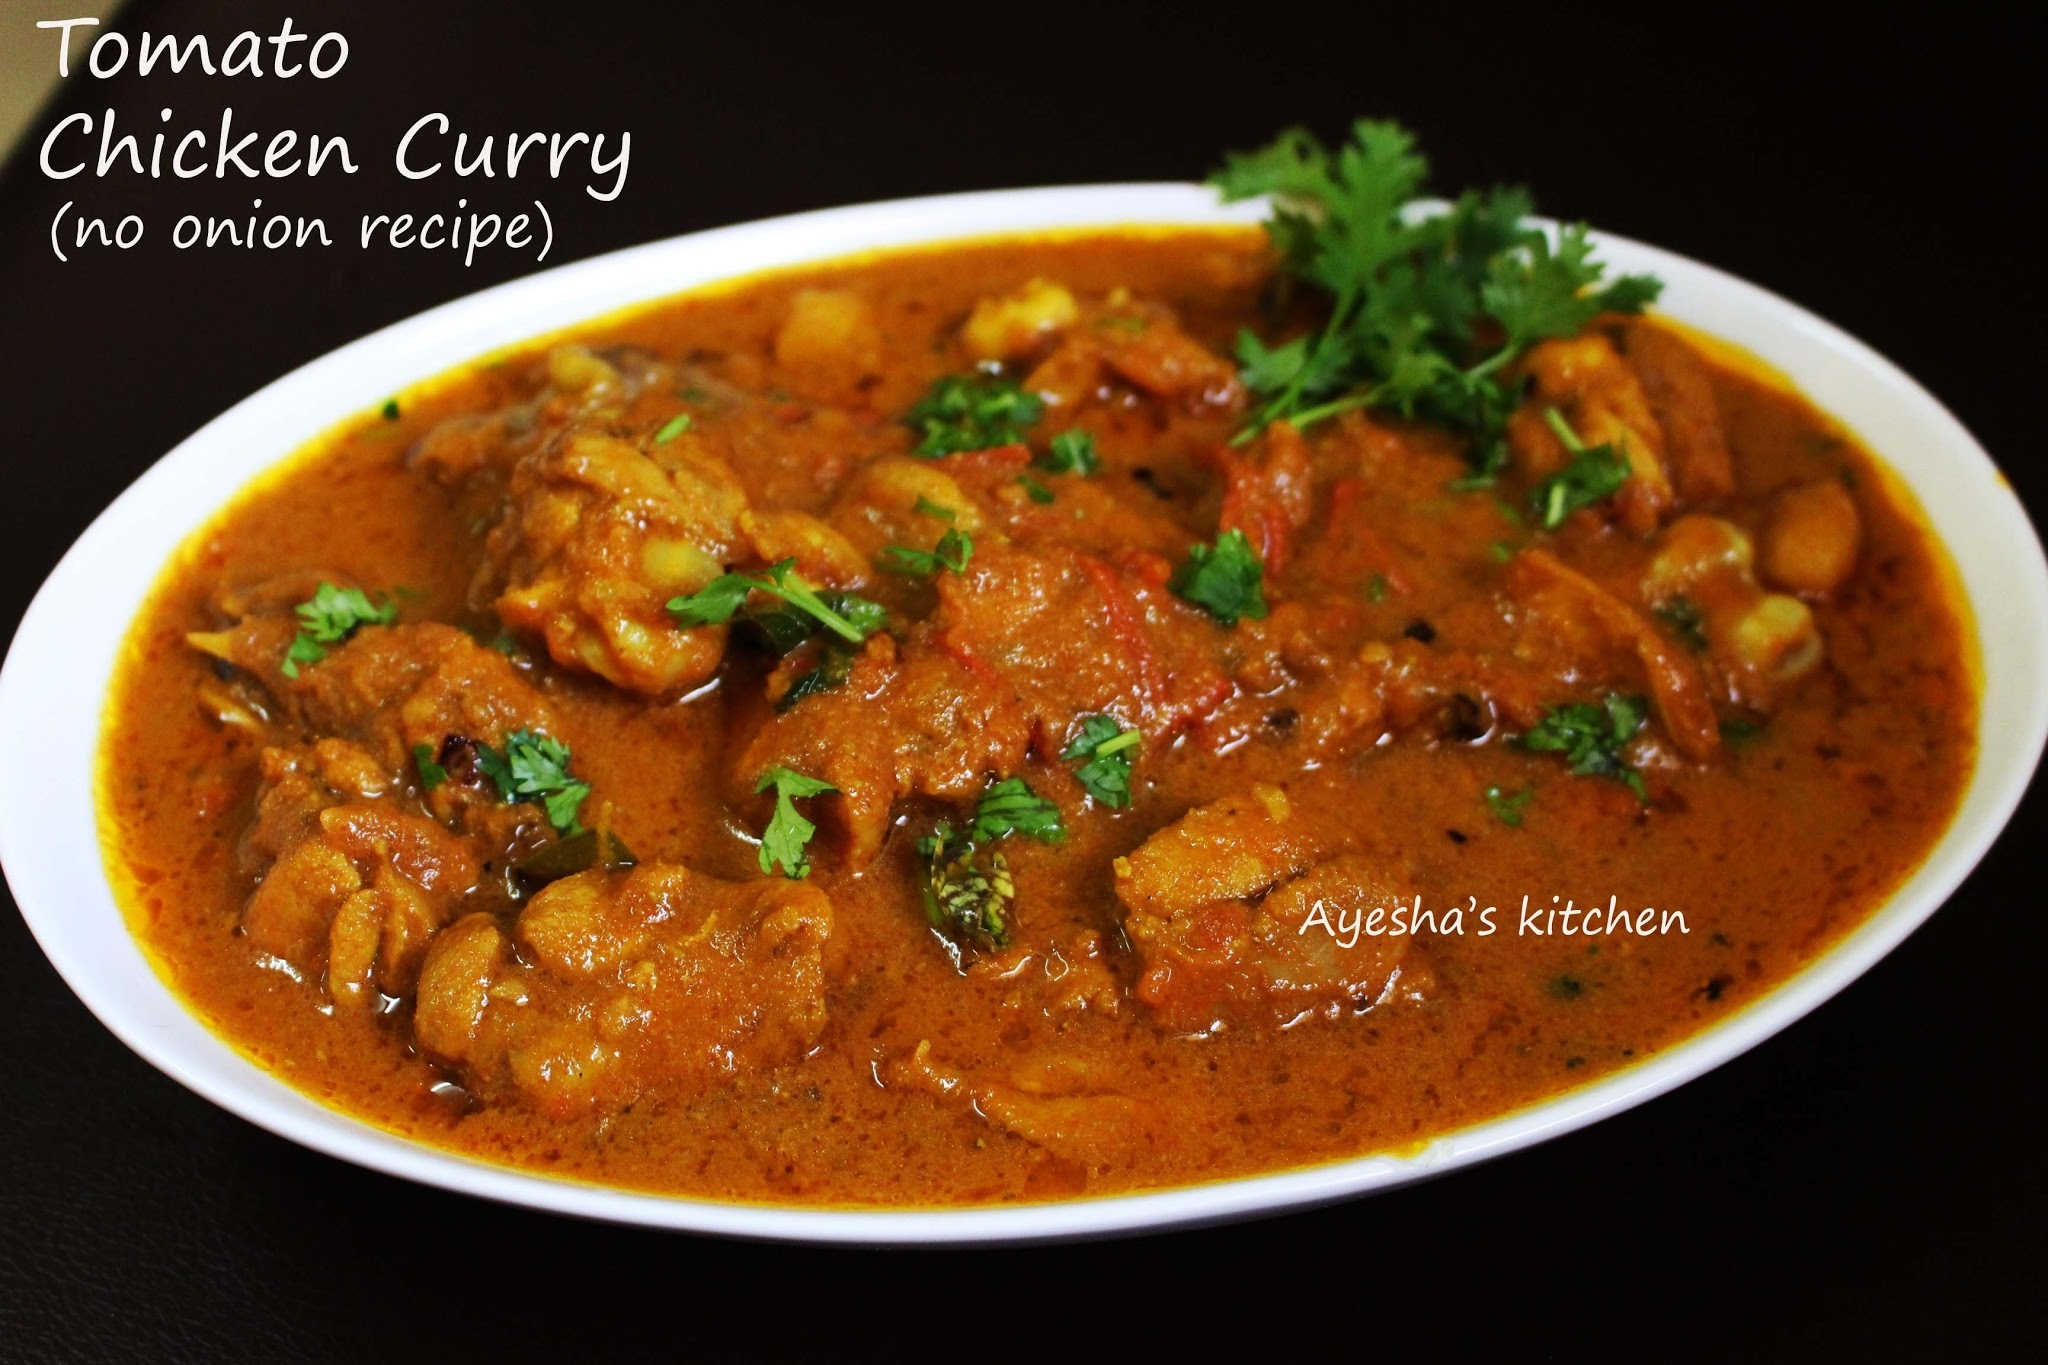 TOMATO CHICKEN CURRY - SPICY CHICKEN RECIPES